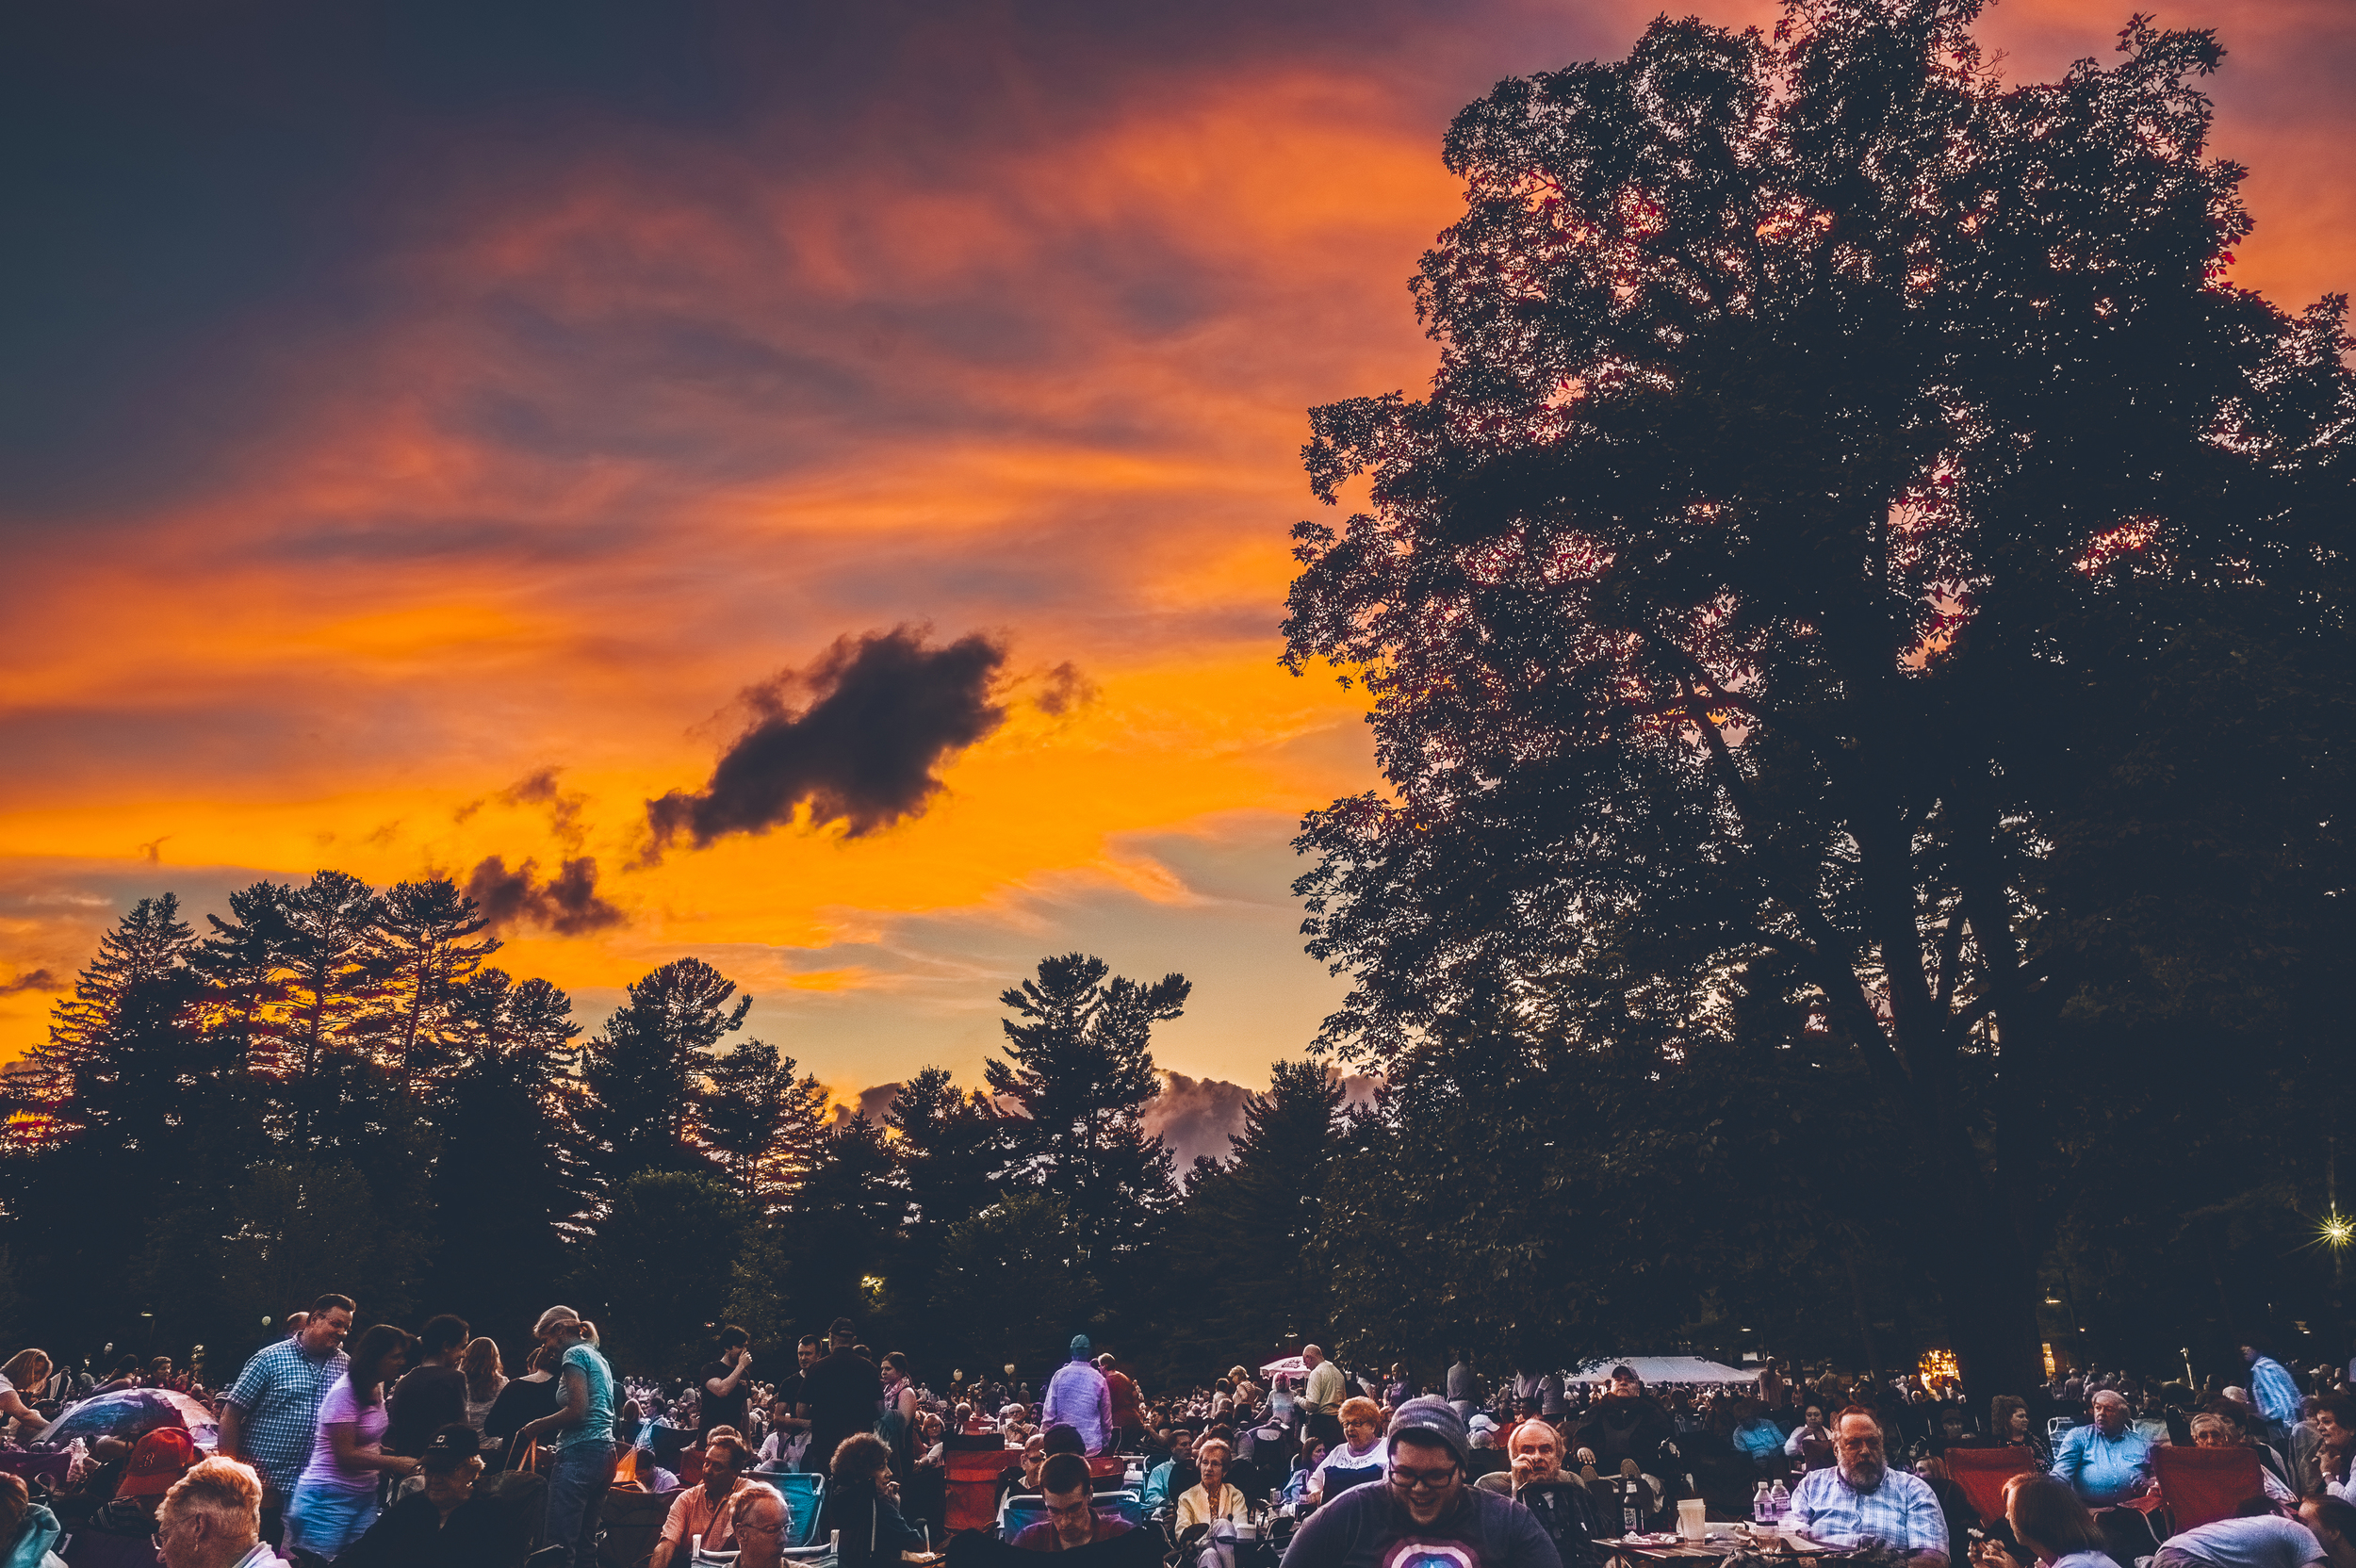 tanglewood sunset.jpg